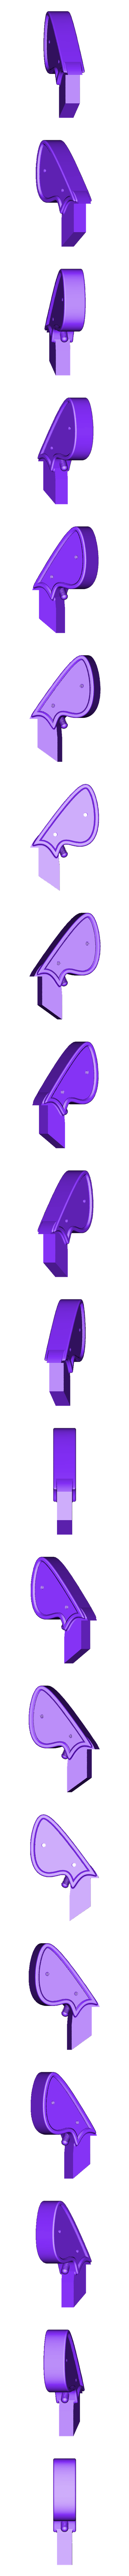 Solid_Handle.stl Download free STL file Raygun • 3D print template, cmoore1